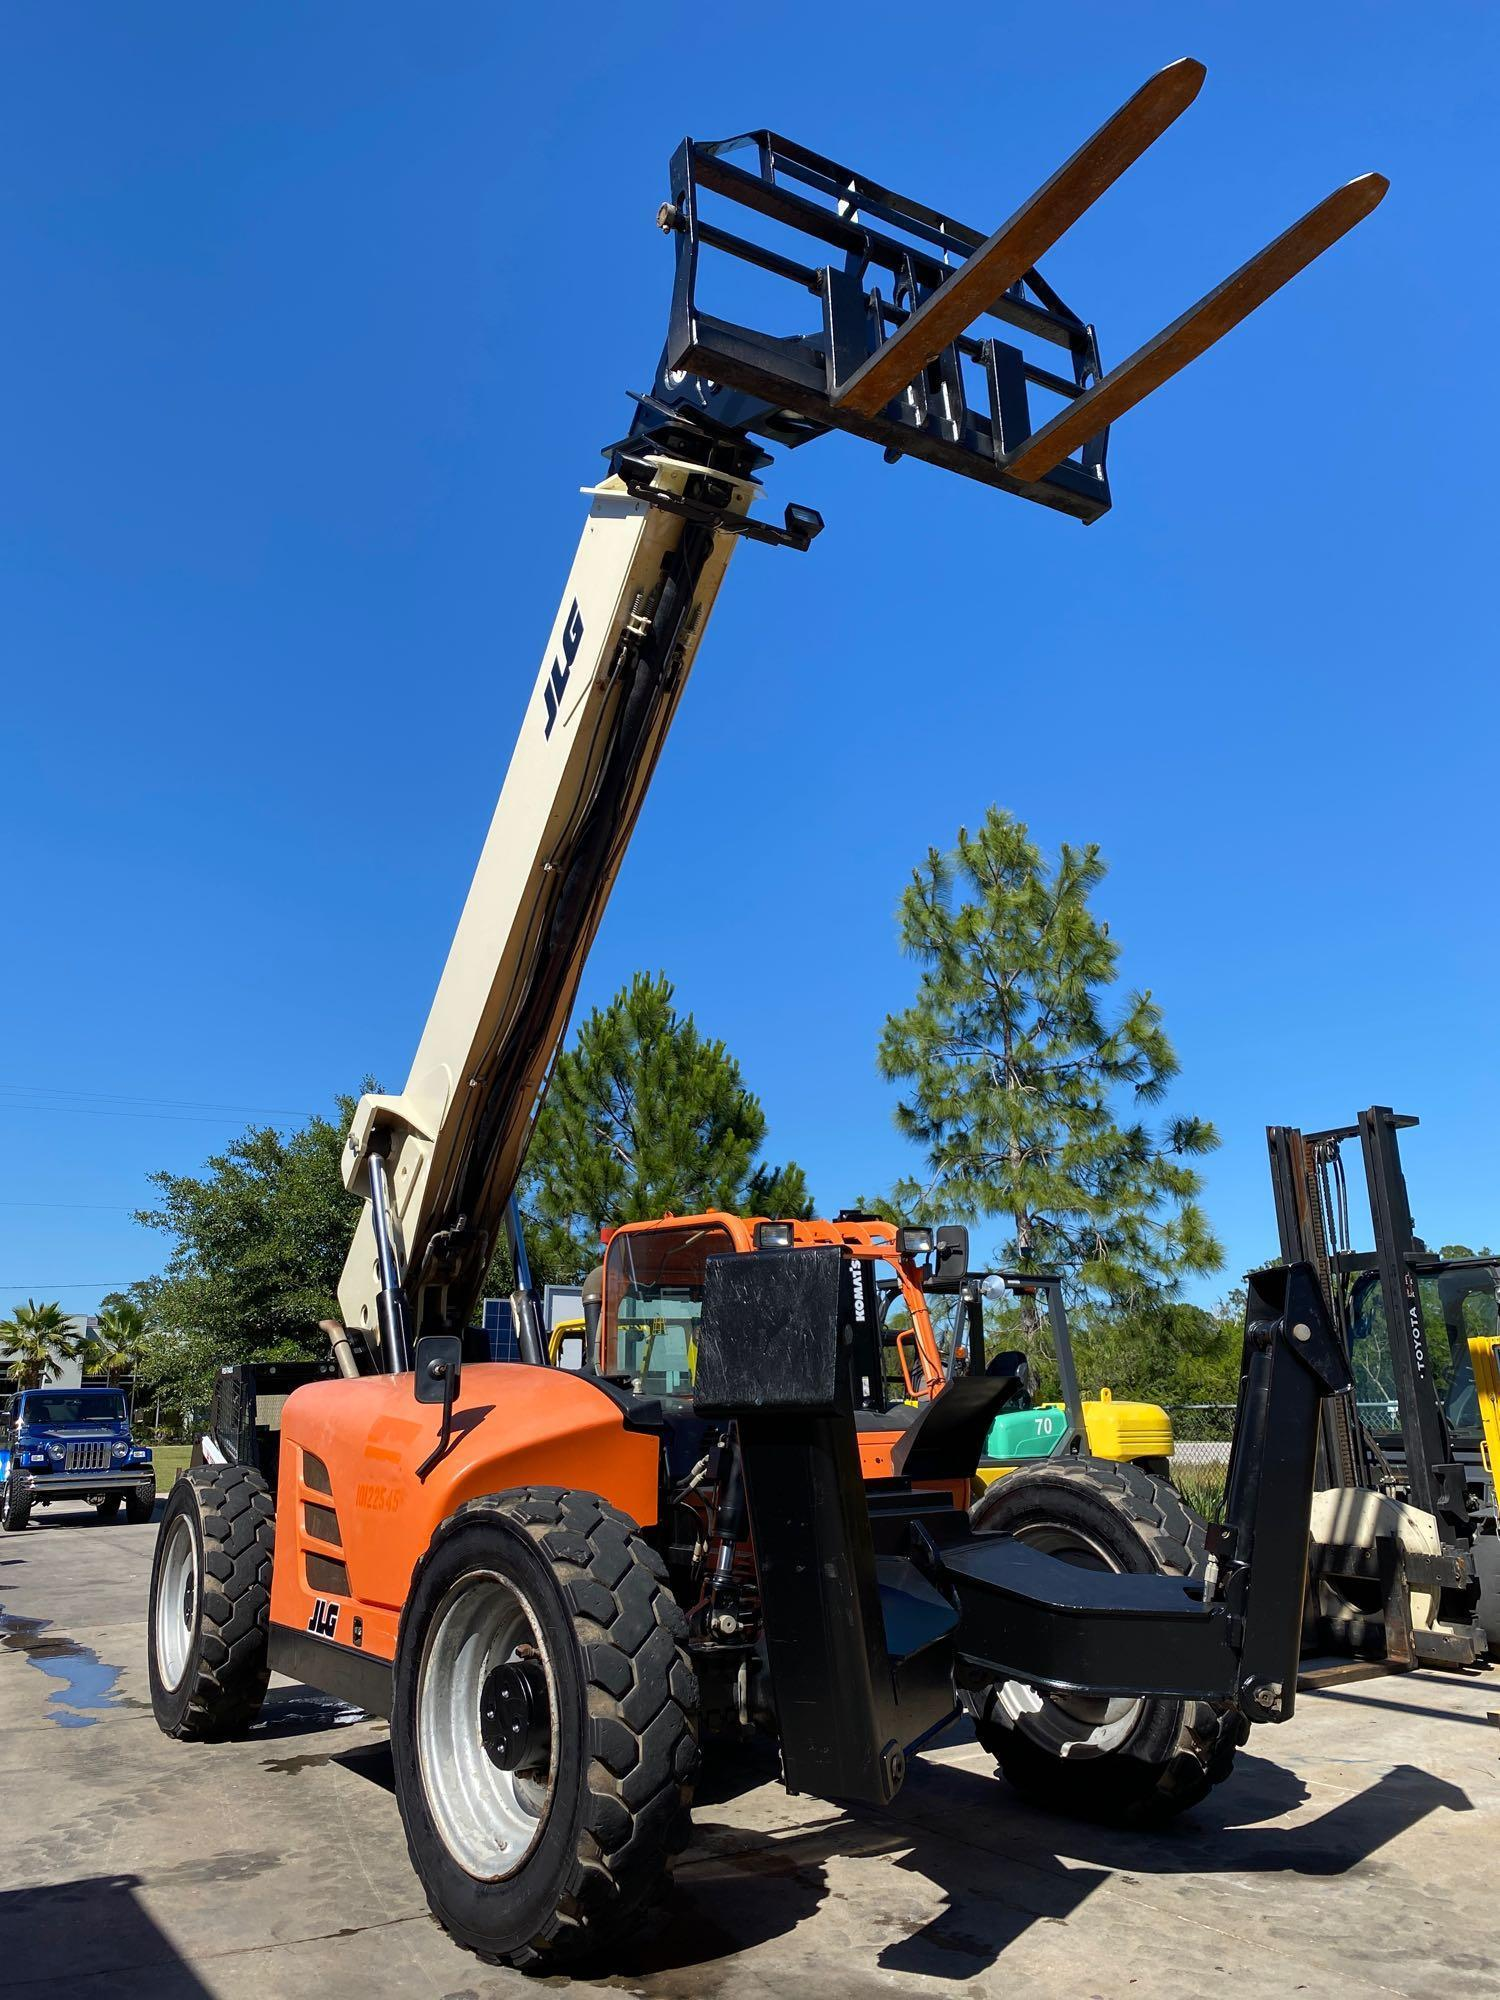 2013 JLG TELESCOPIC FORKLIFT MODEL G10-55A, 10,000 LB CAPACITY, OUTRIGGERS, 5,717.7 HOURS SHOWING, C